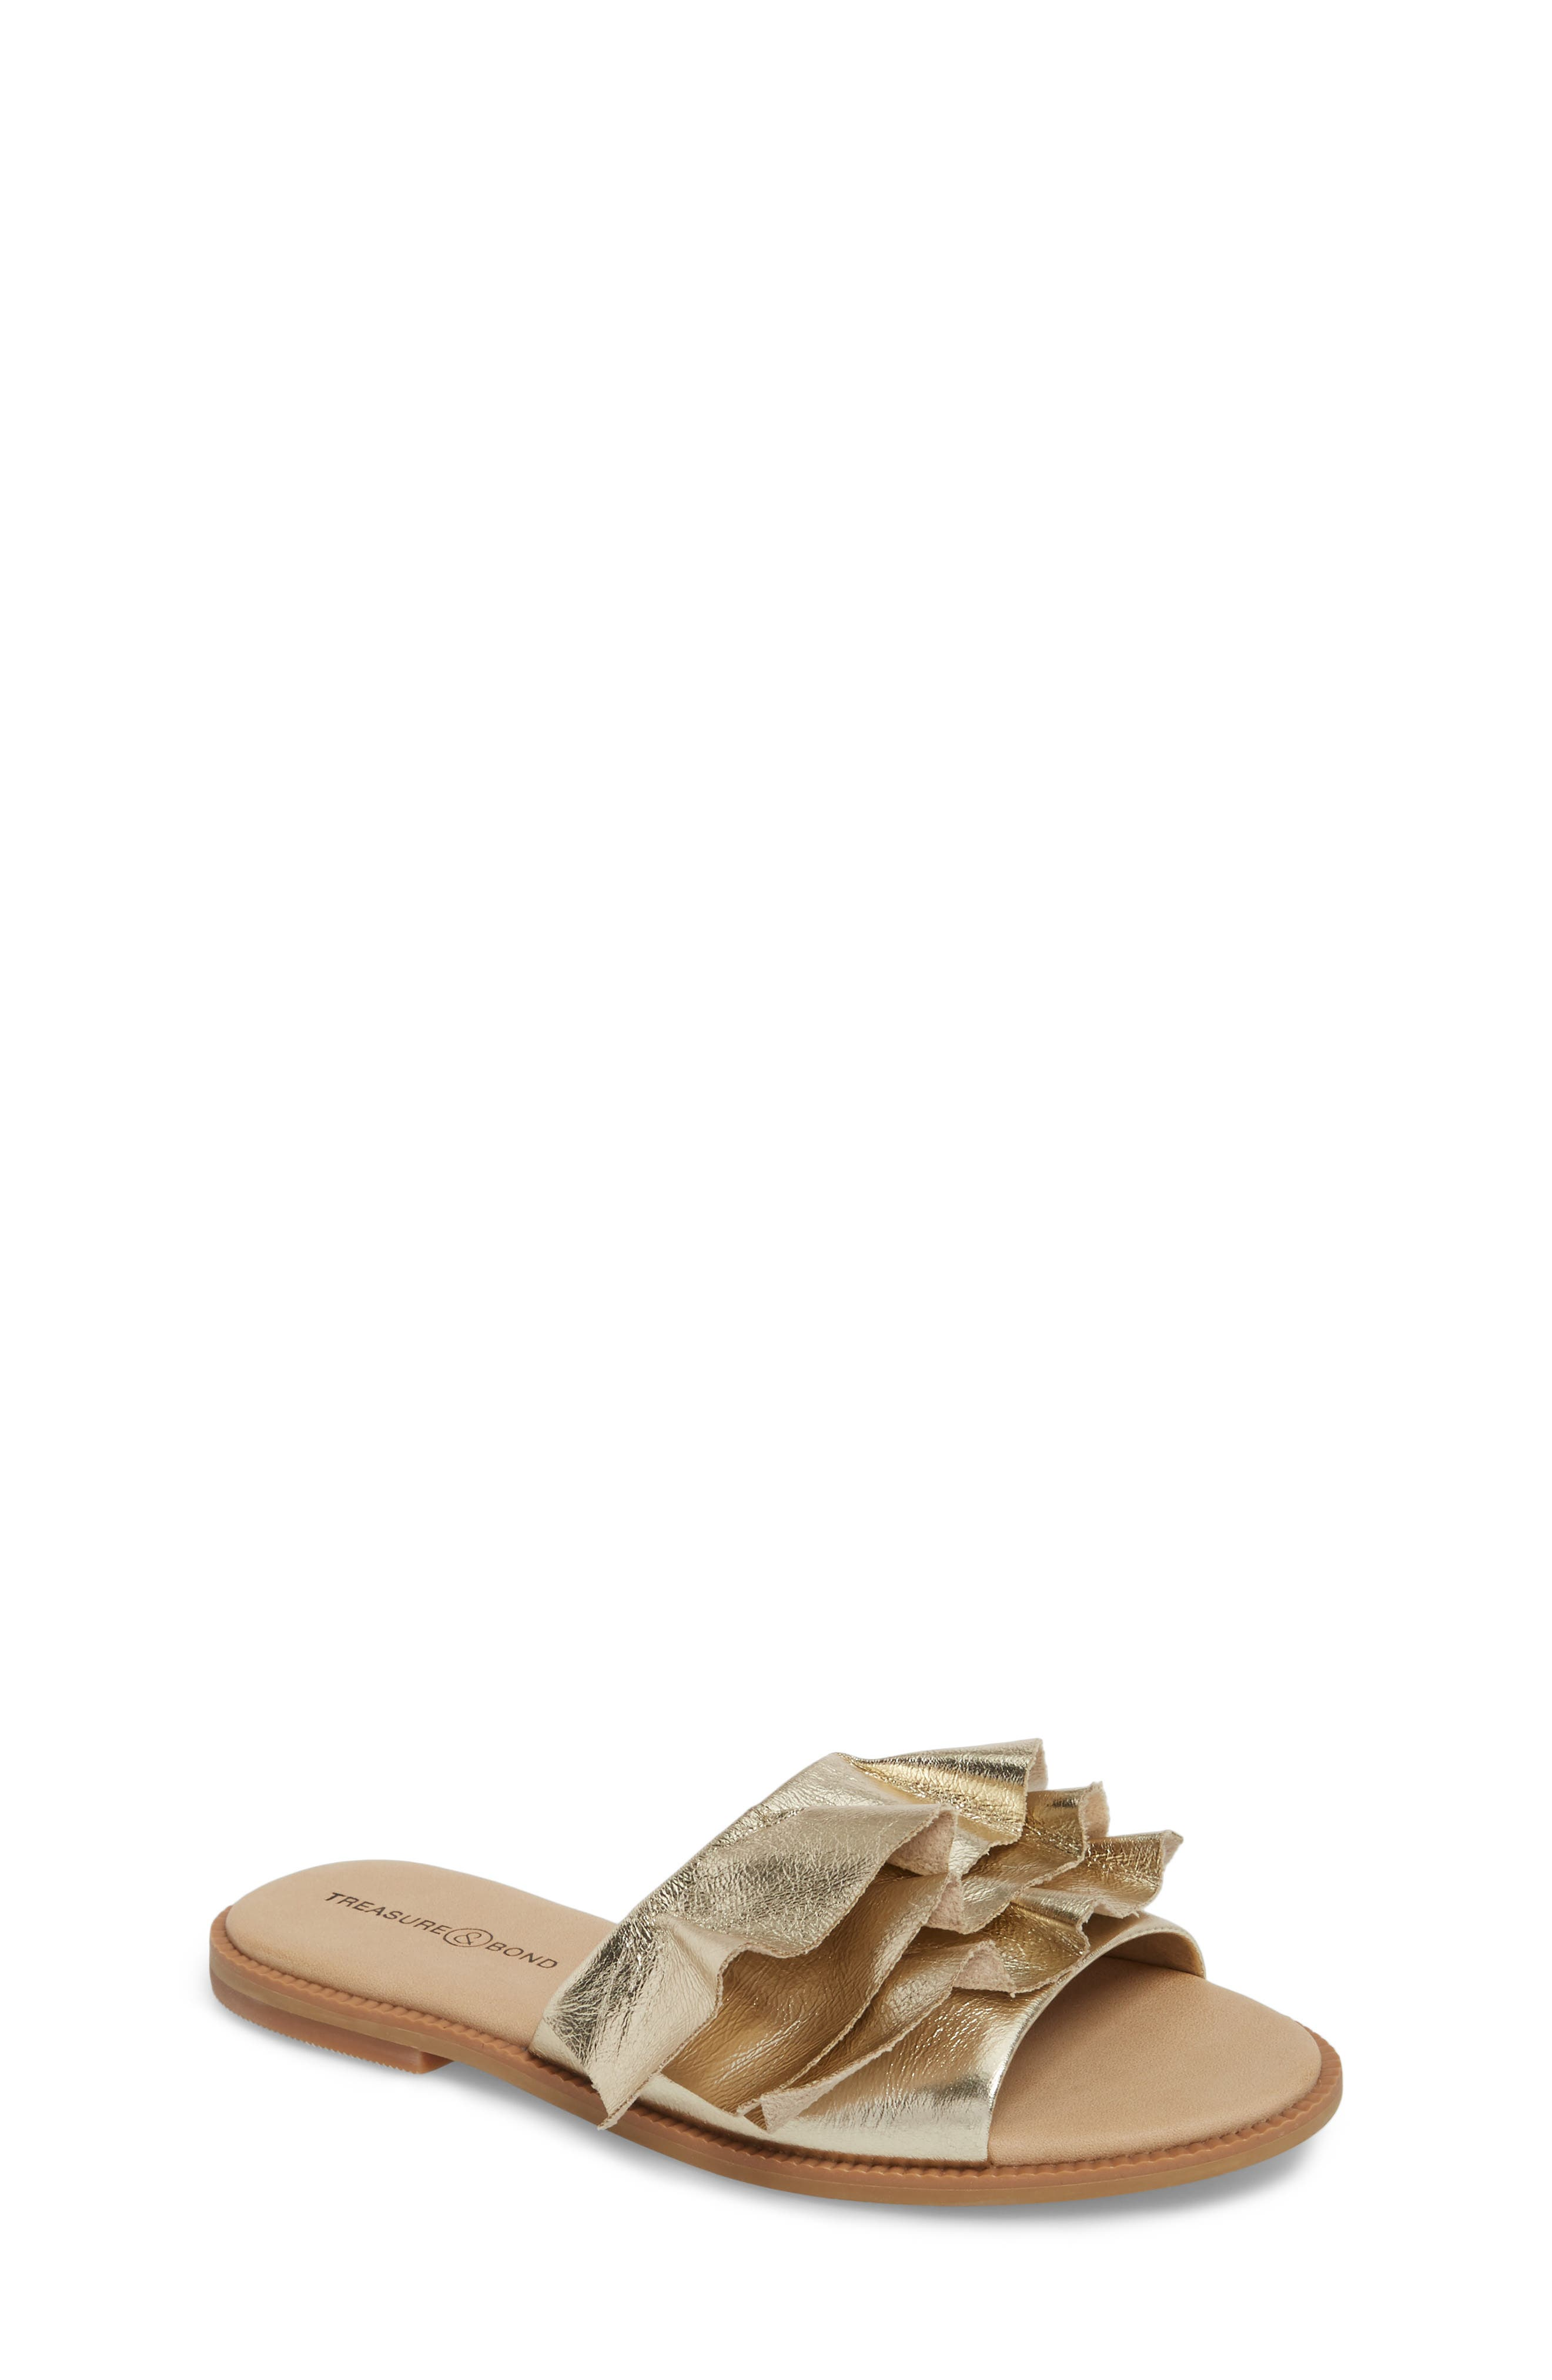 Ruby Ruffled Slide Sandal,                         Main,                         color, Gold Crackle Faux Leather